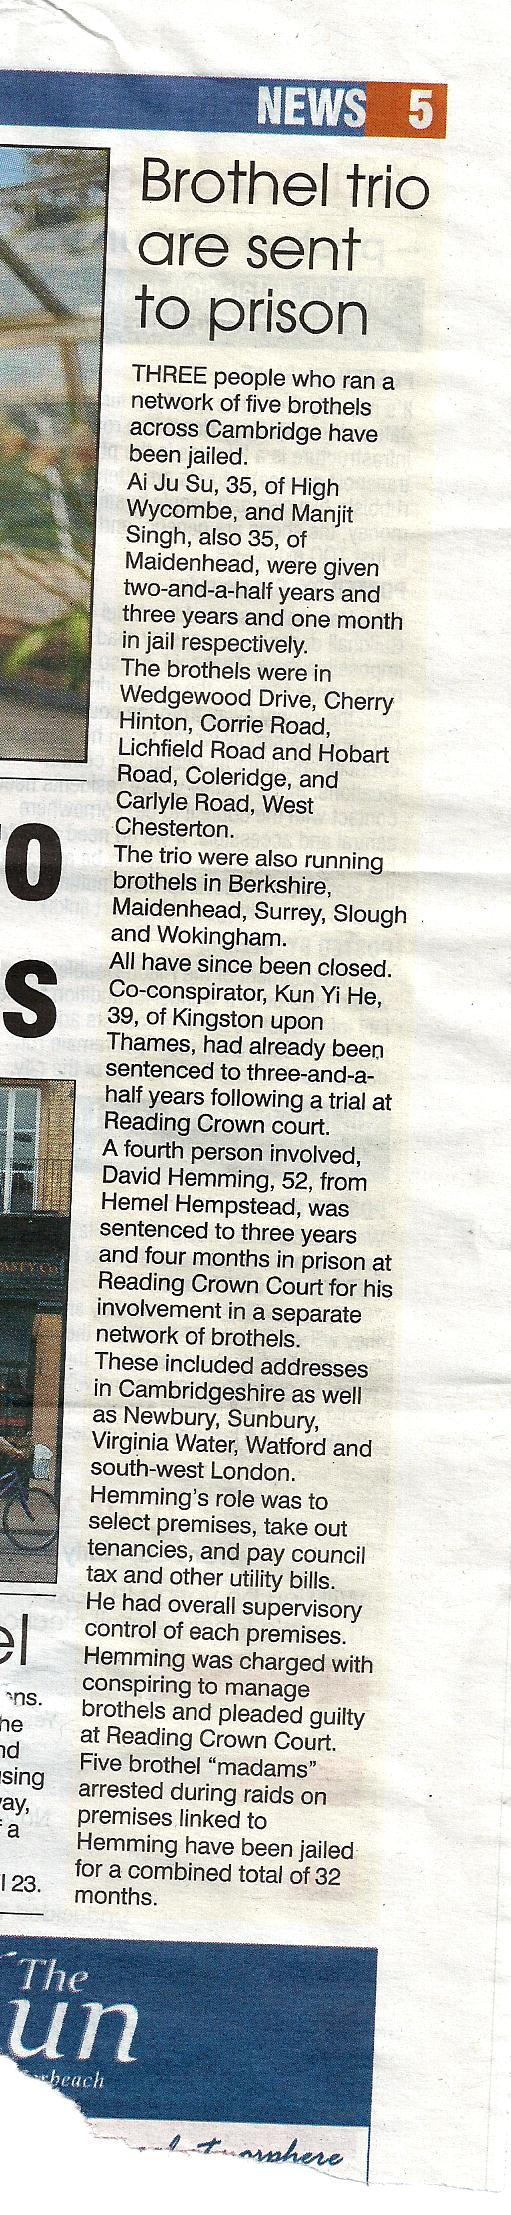 Newspaper clipping with headline 'Brothel trio are sent to prison'